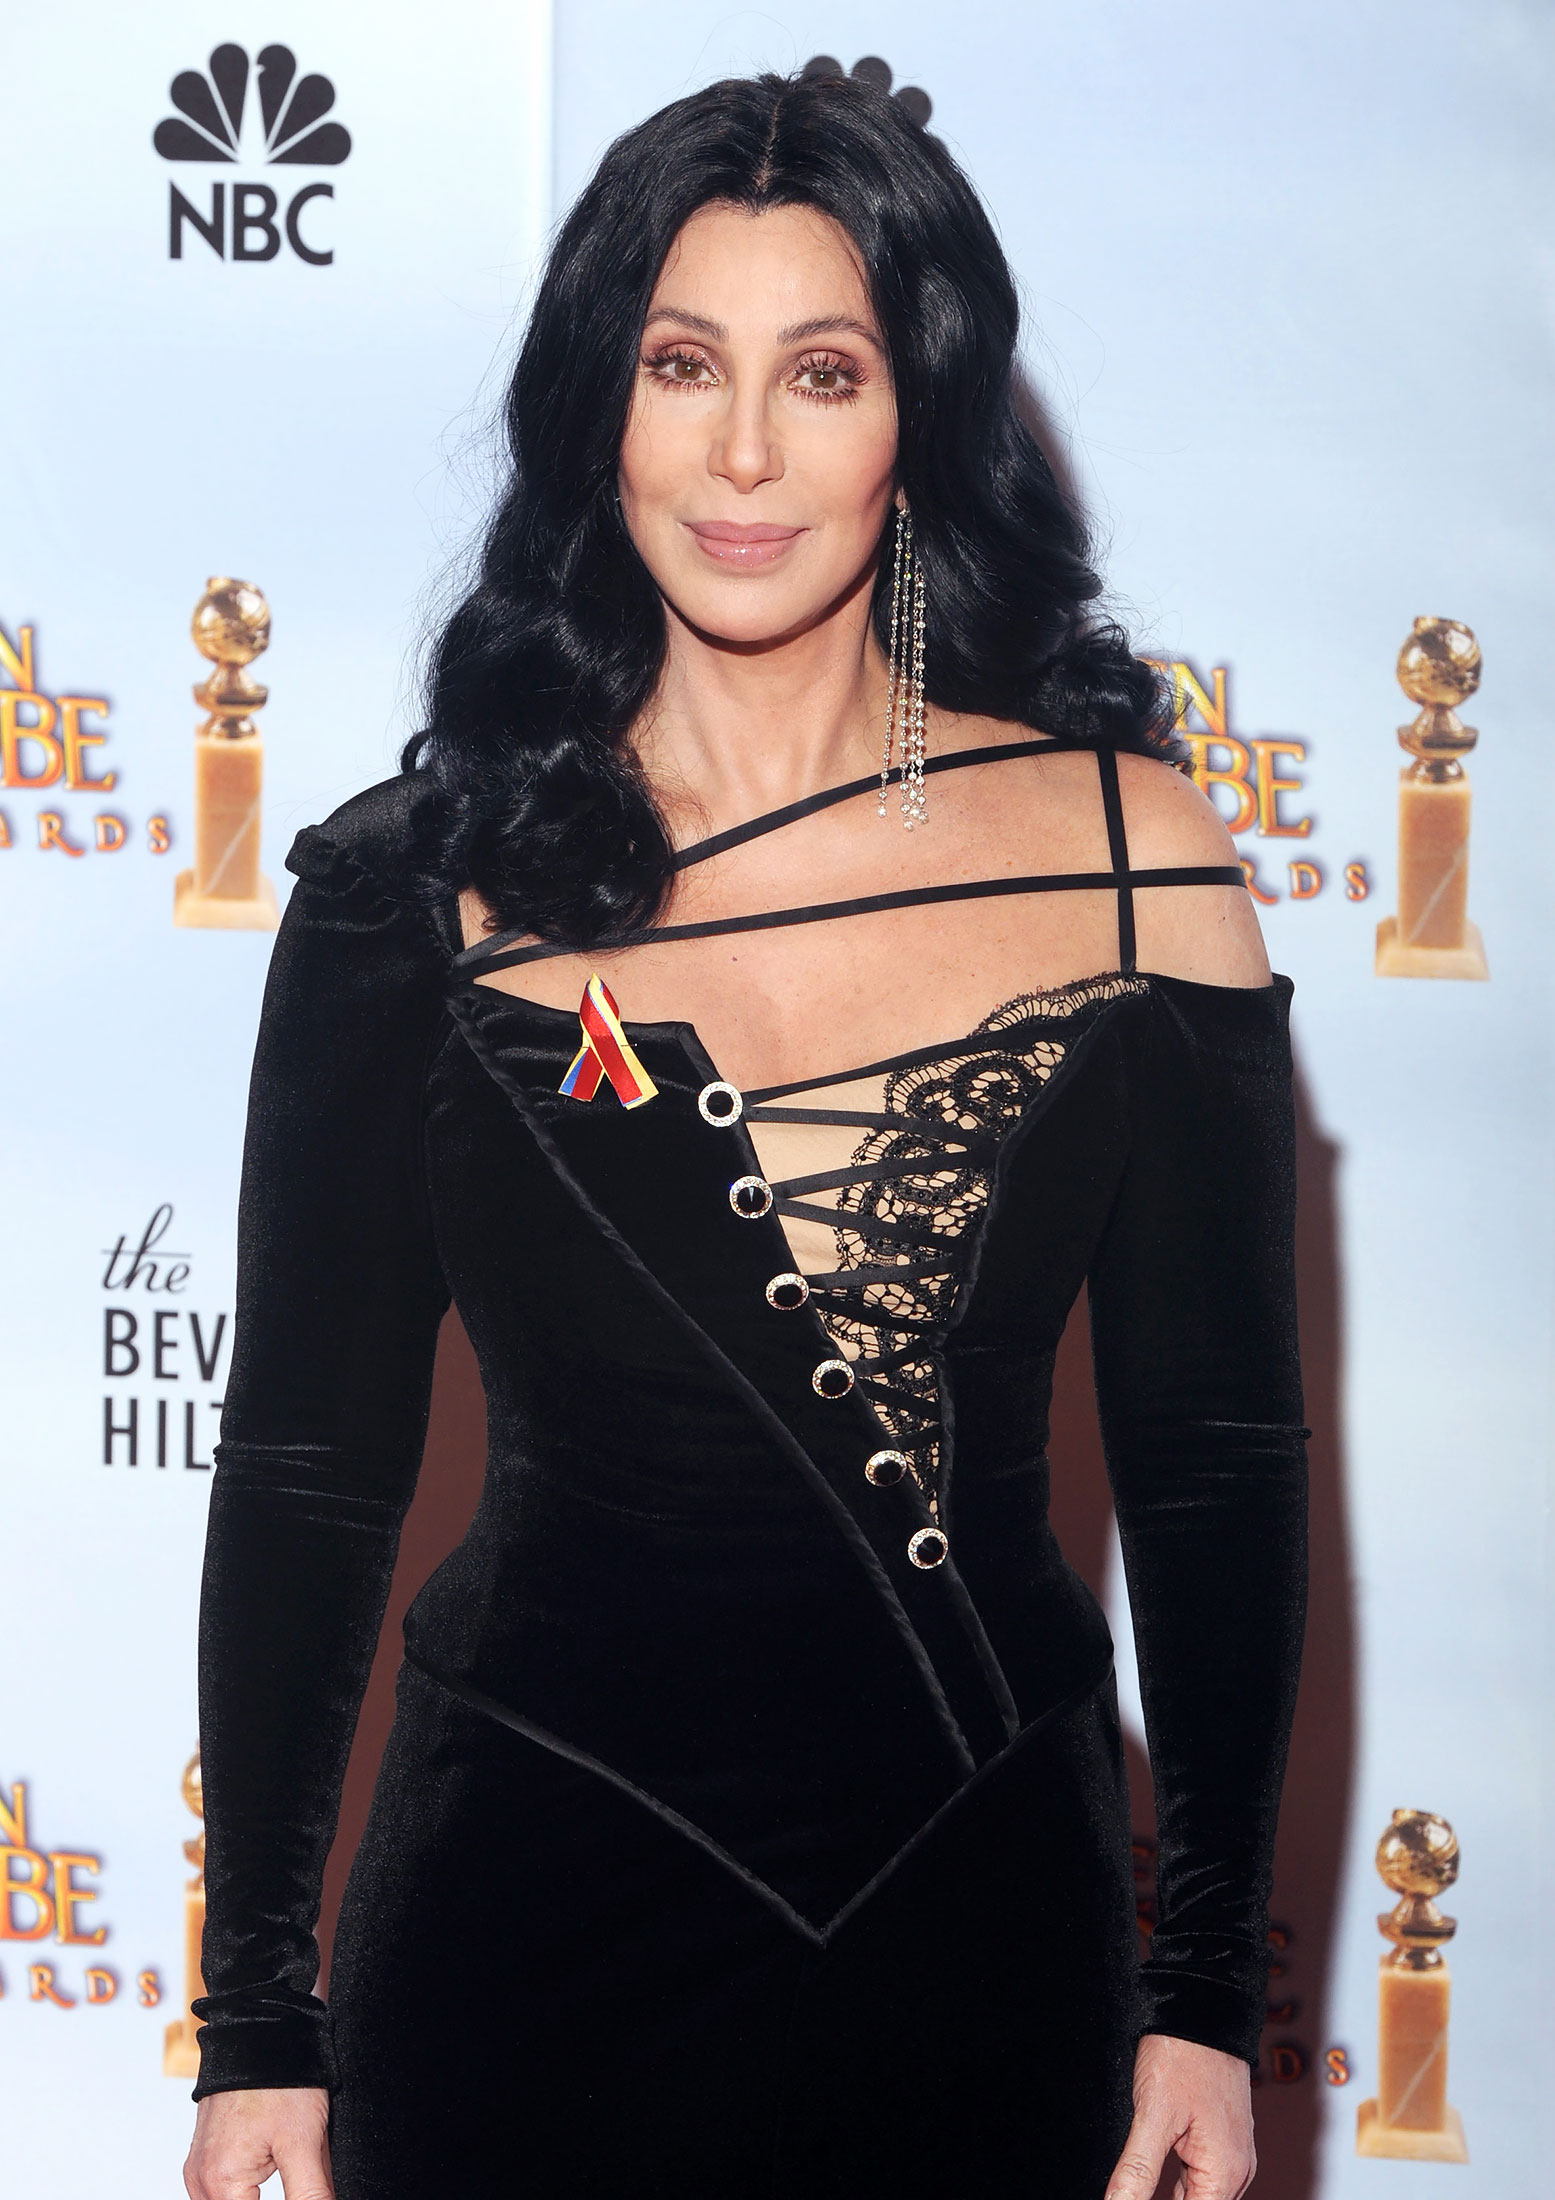 Look-Back-Cher-Most-Memorable-Fashion-Moments-Feature.jpg